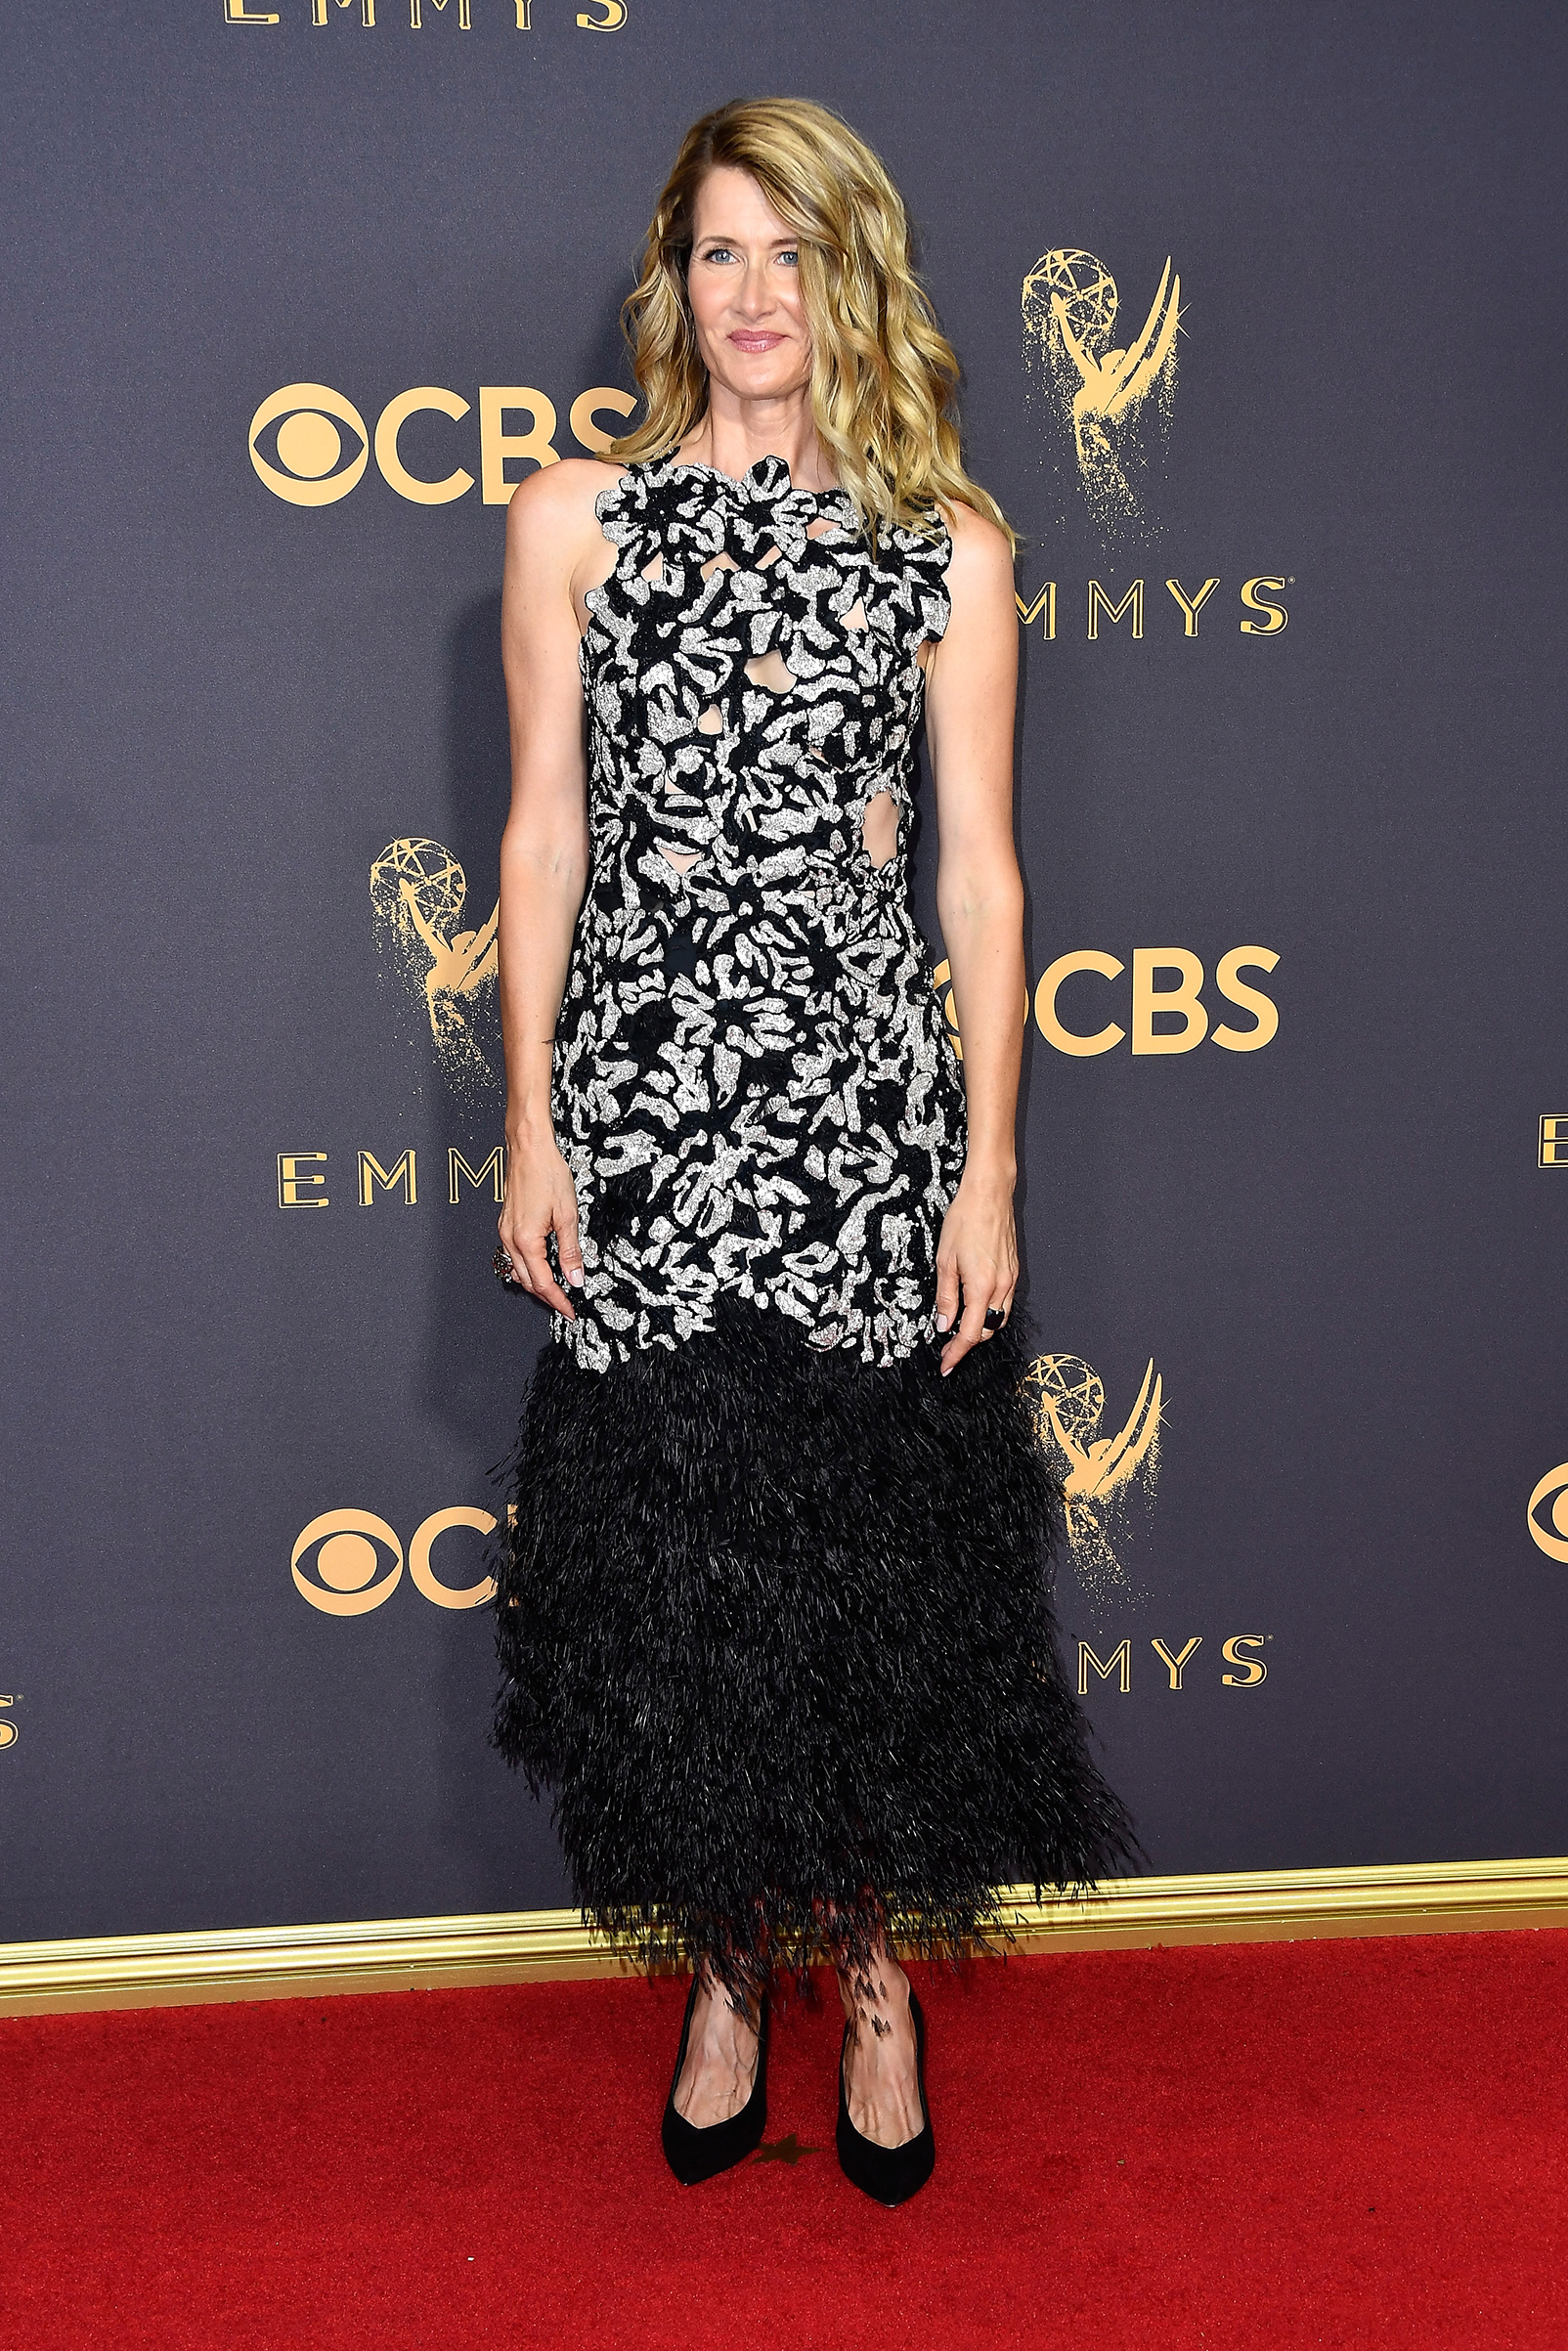 Actor Laura Dern attends the 69th Annual Primetime Emmy Awards at Microsoft Theater on September 17, 2017 in Los Angeles, California.